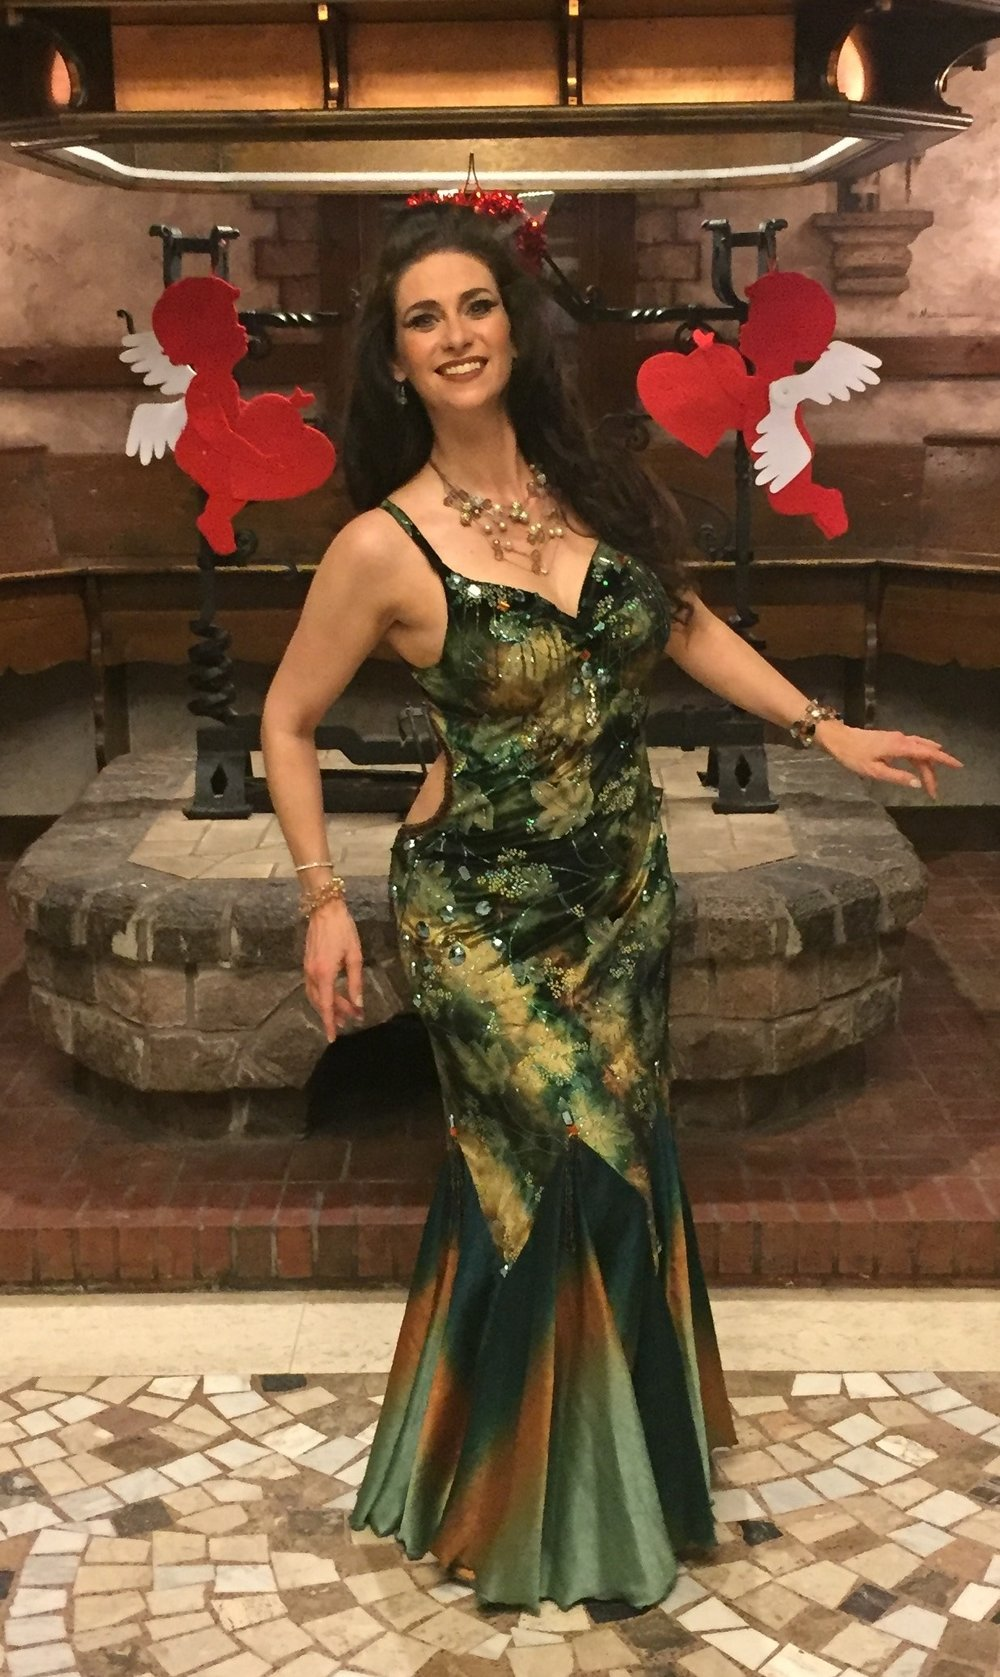 Valentine's Evening hosted by Middle Eastern Entertainment at Fogolar Furlan club February 2018